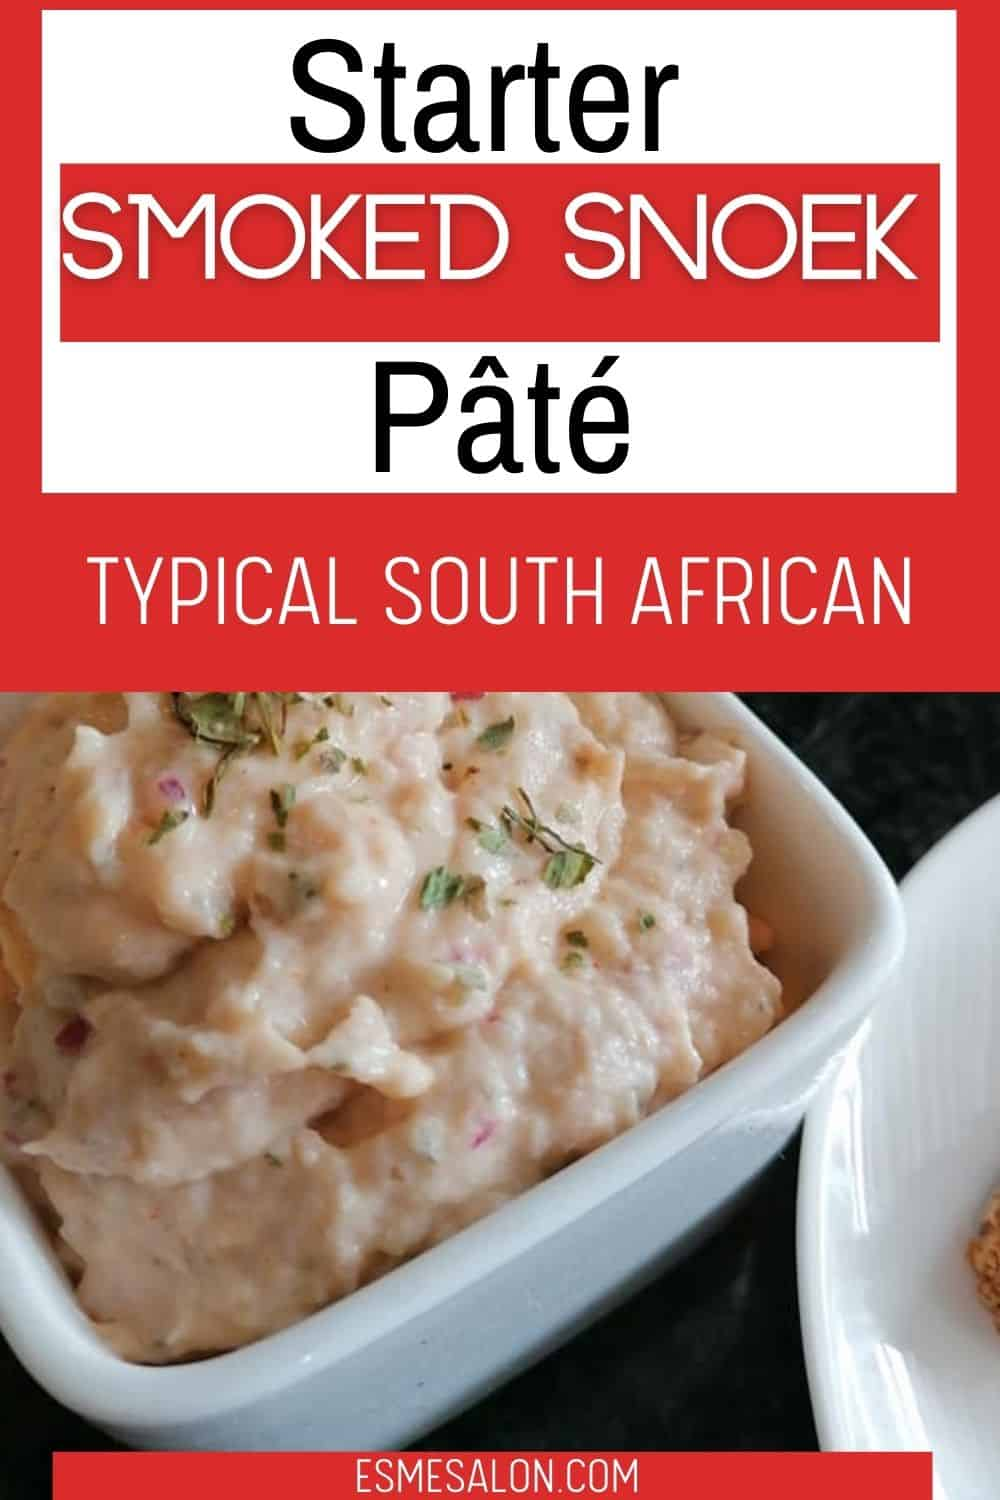 A bowl of A classic South African Smoked Snoek Pâté